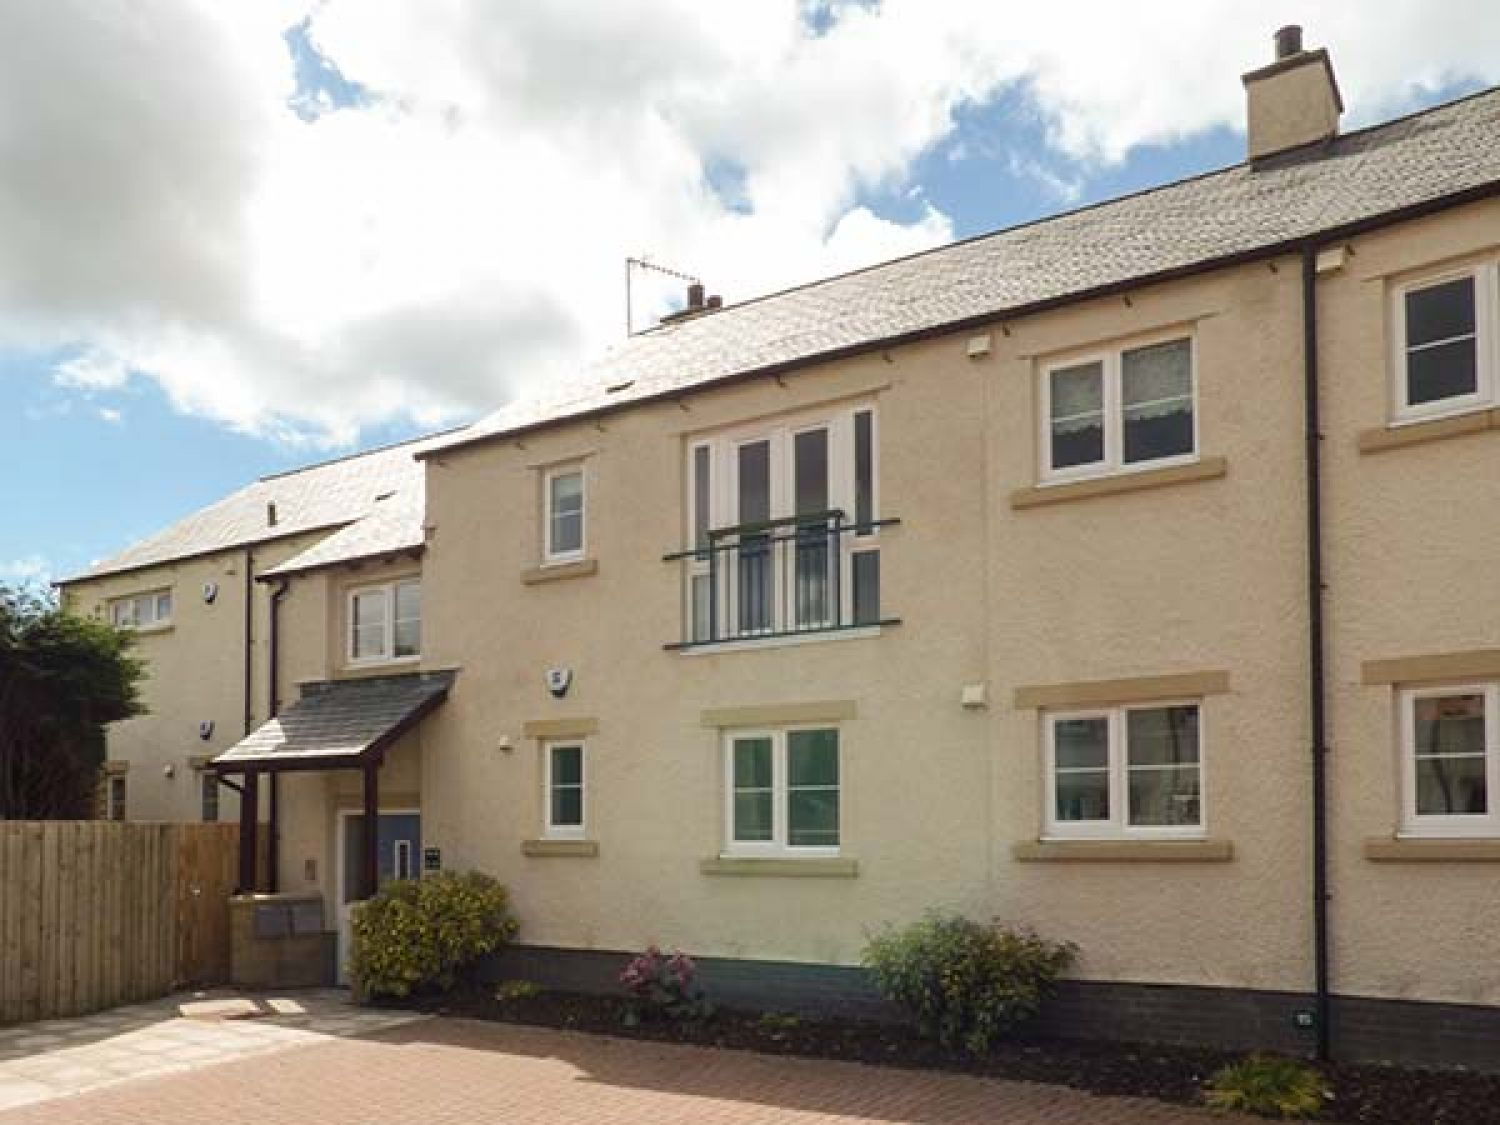 15 Laundry Mews - Yorkshire Dales - 917832 - photo 1